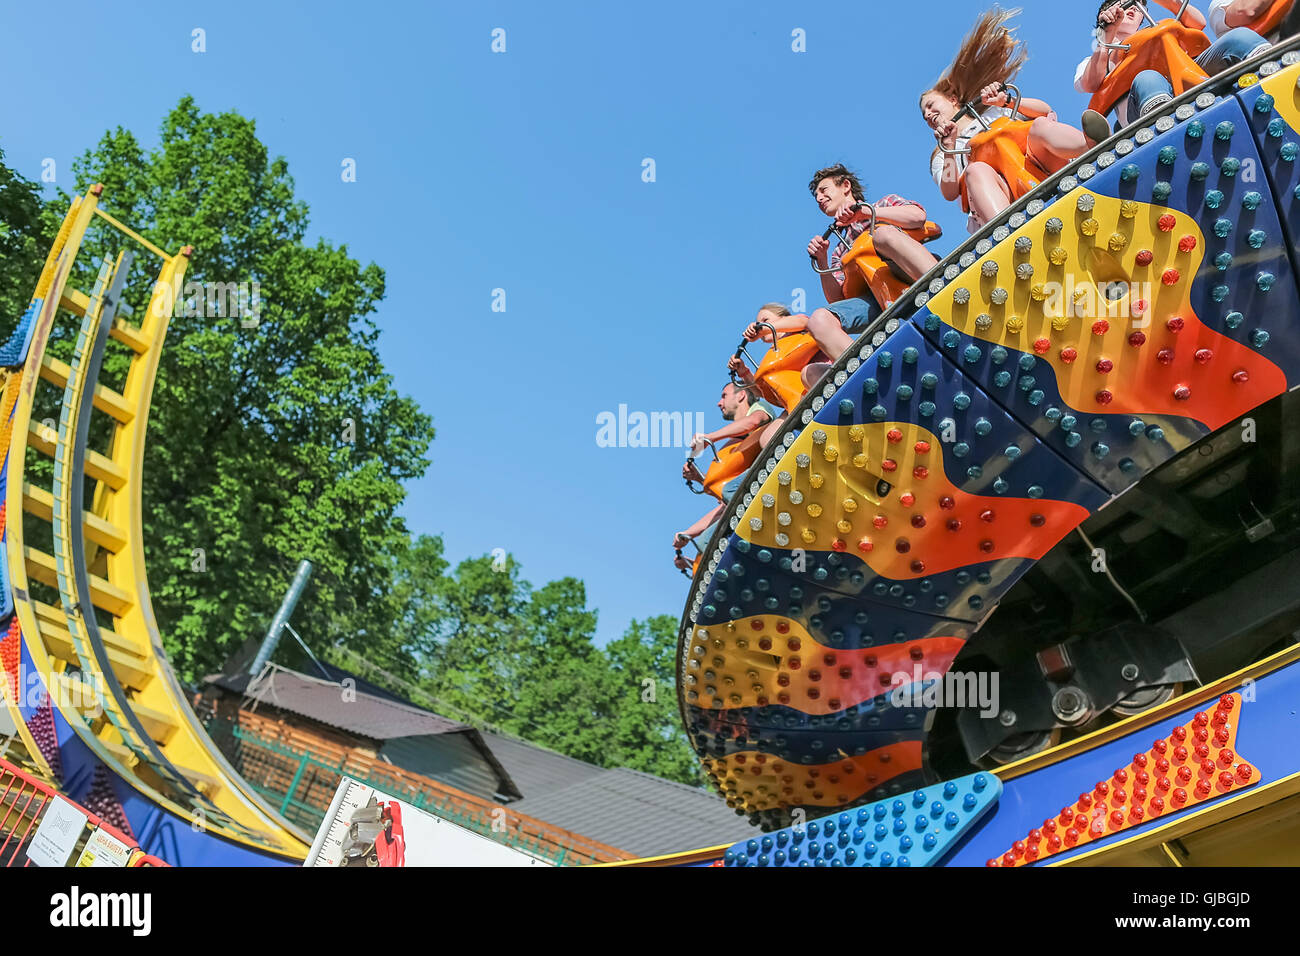 A trip to the amusement park, Moscow, Russia - Stock Image